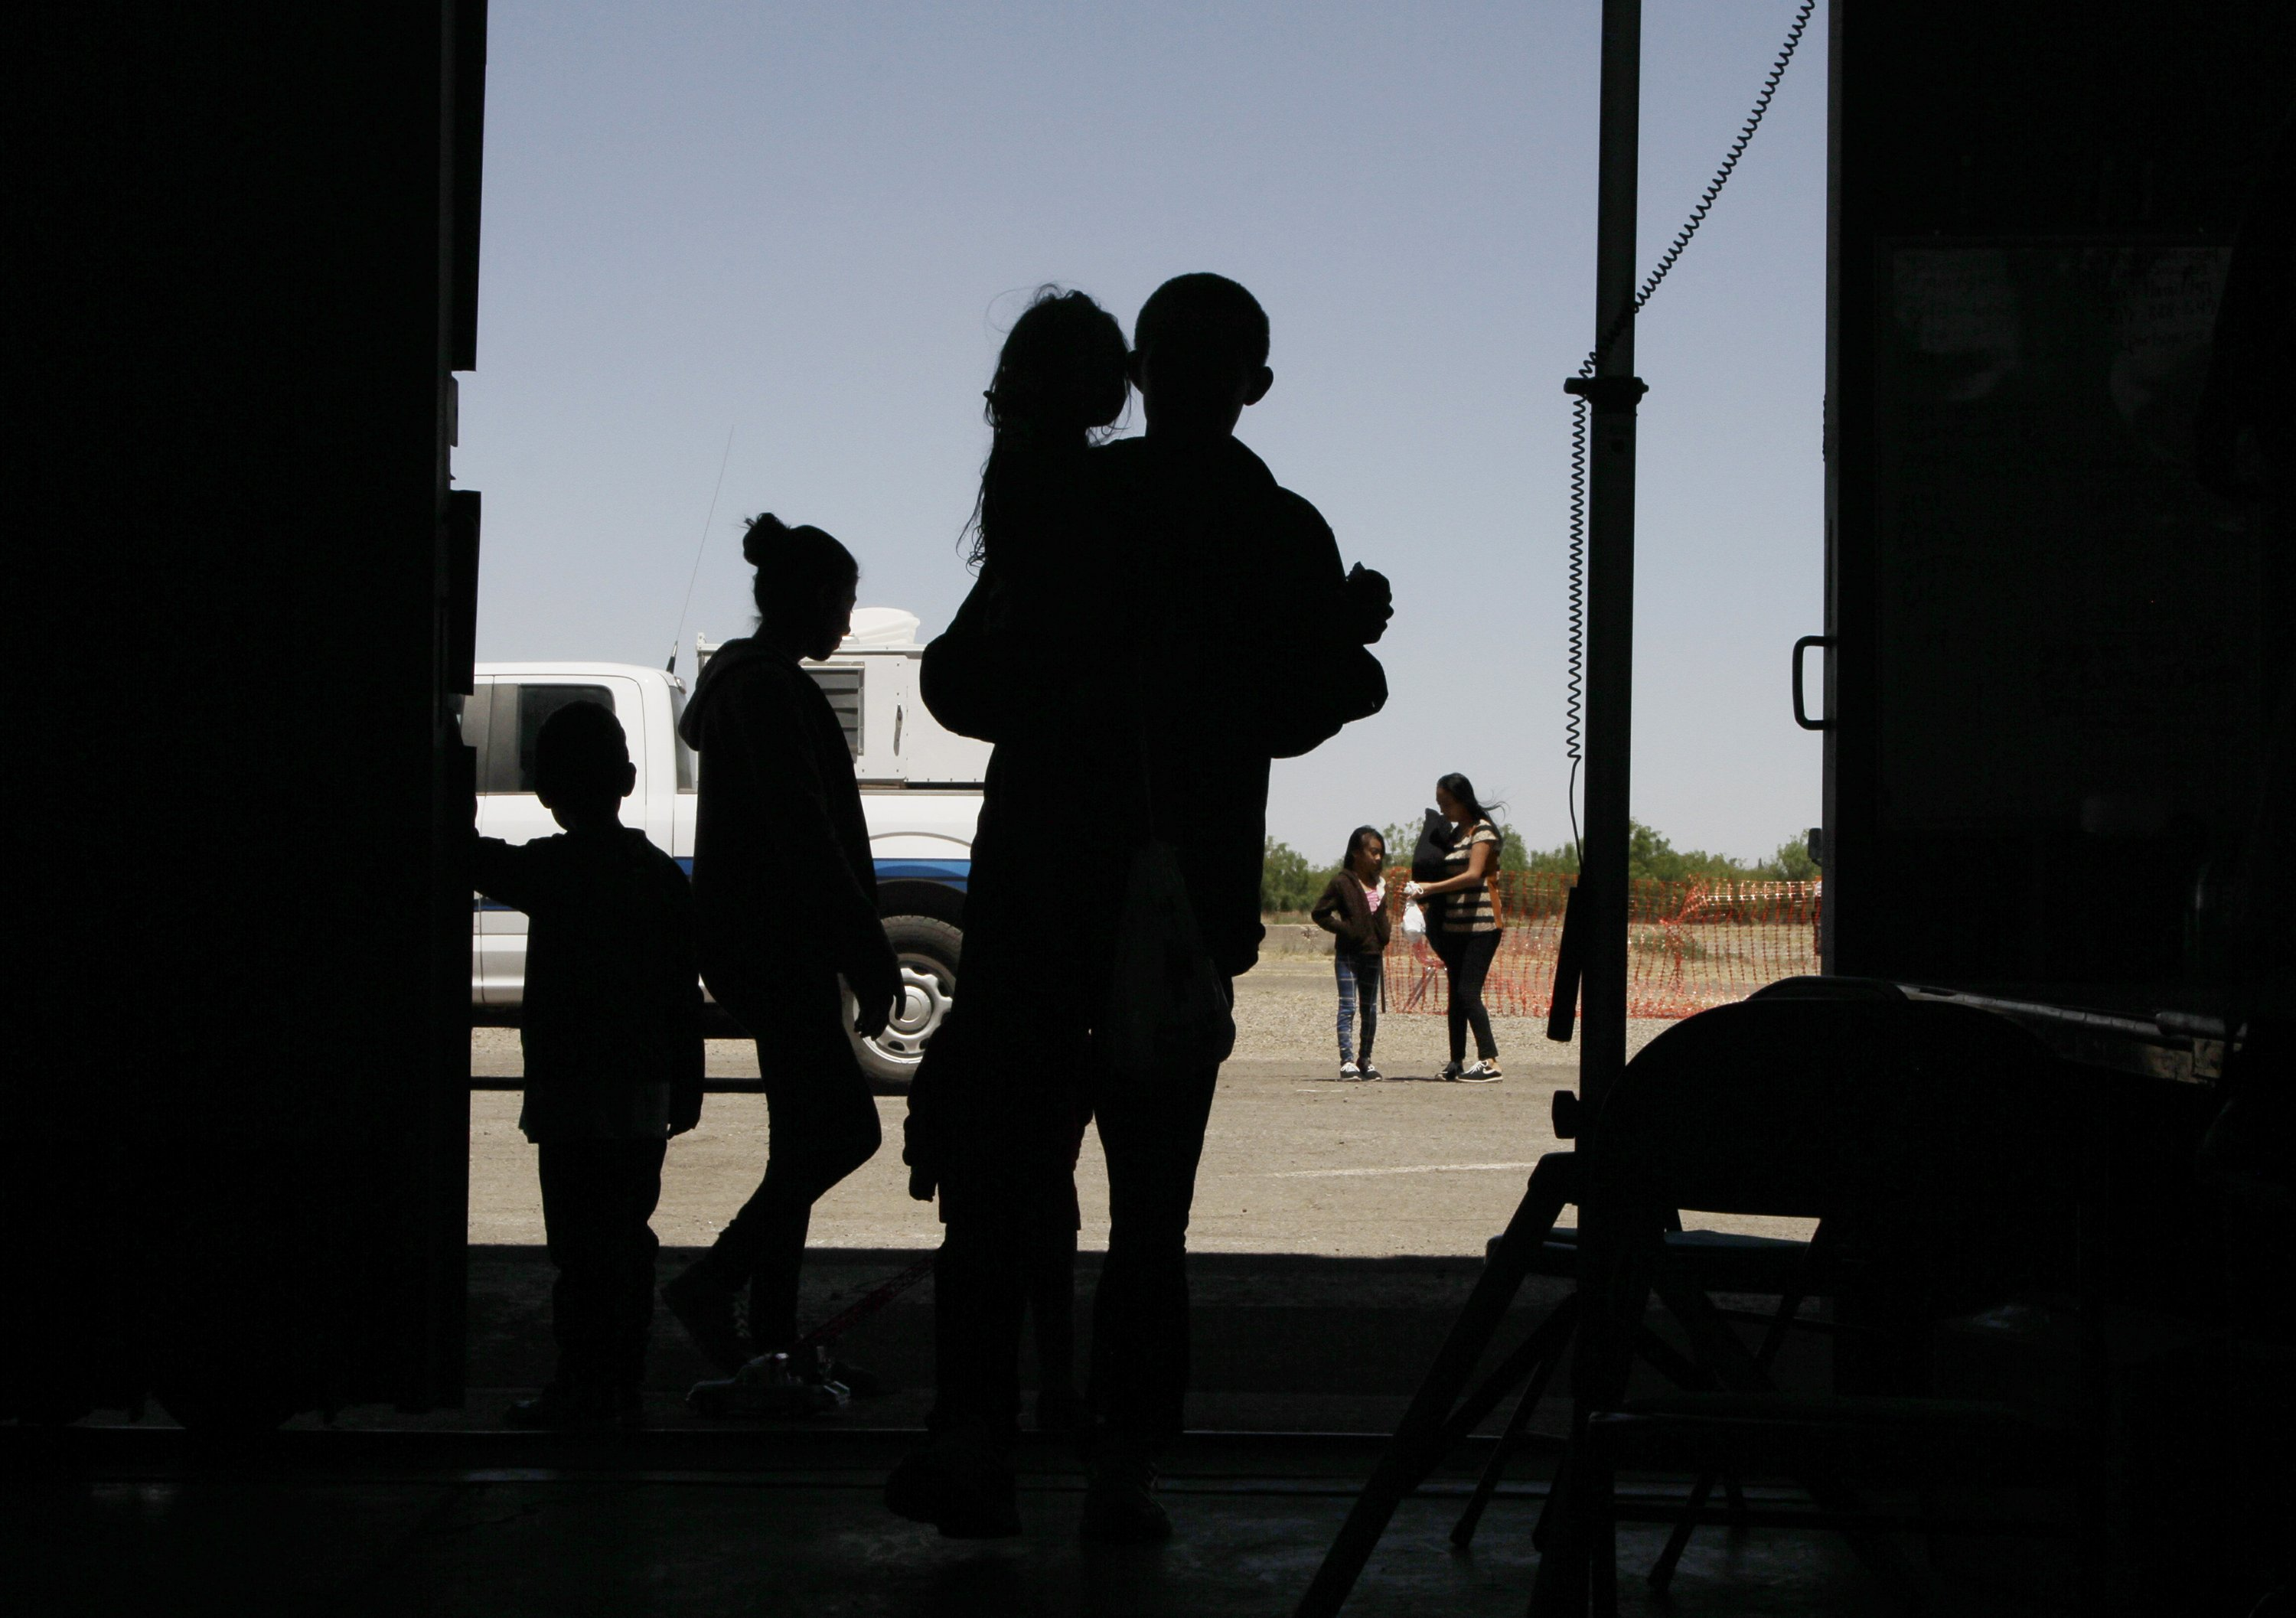 Texas Kids Werent Kept Out Of Special >> Attorneys Texas Border Facility Is Neglecting Migrant Kids